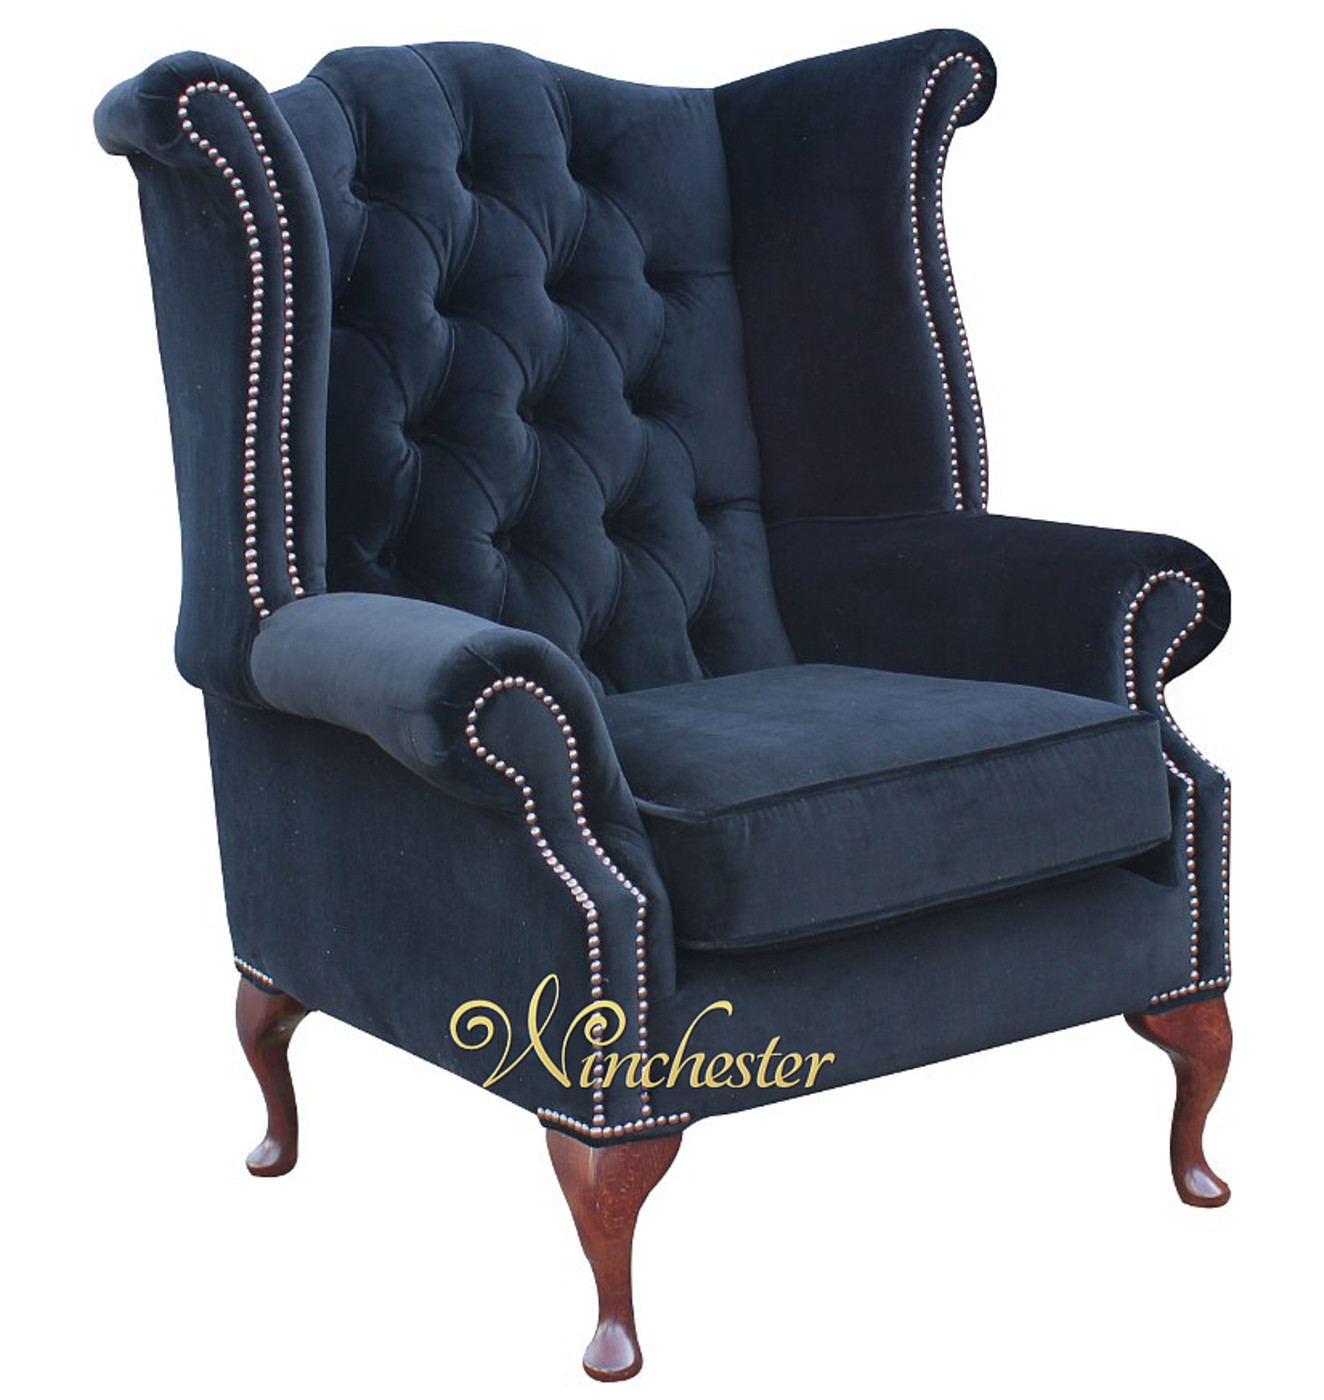 Chesterfield Fabric Queen Anne High Back Wing Chair Black Velvet ...